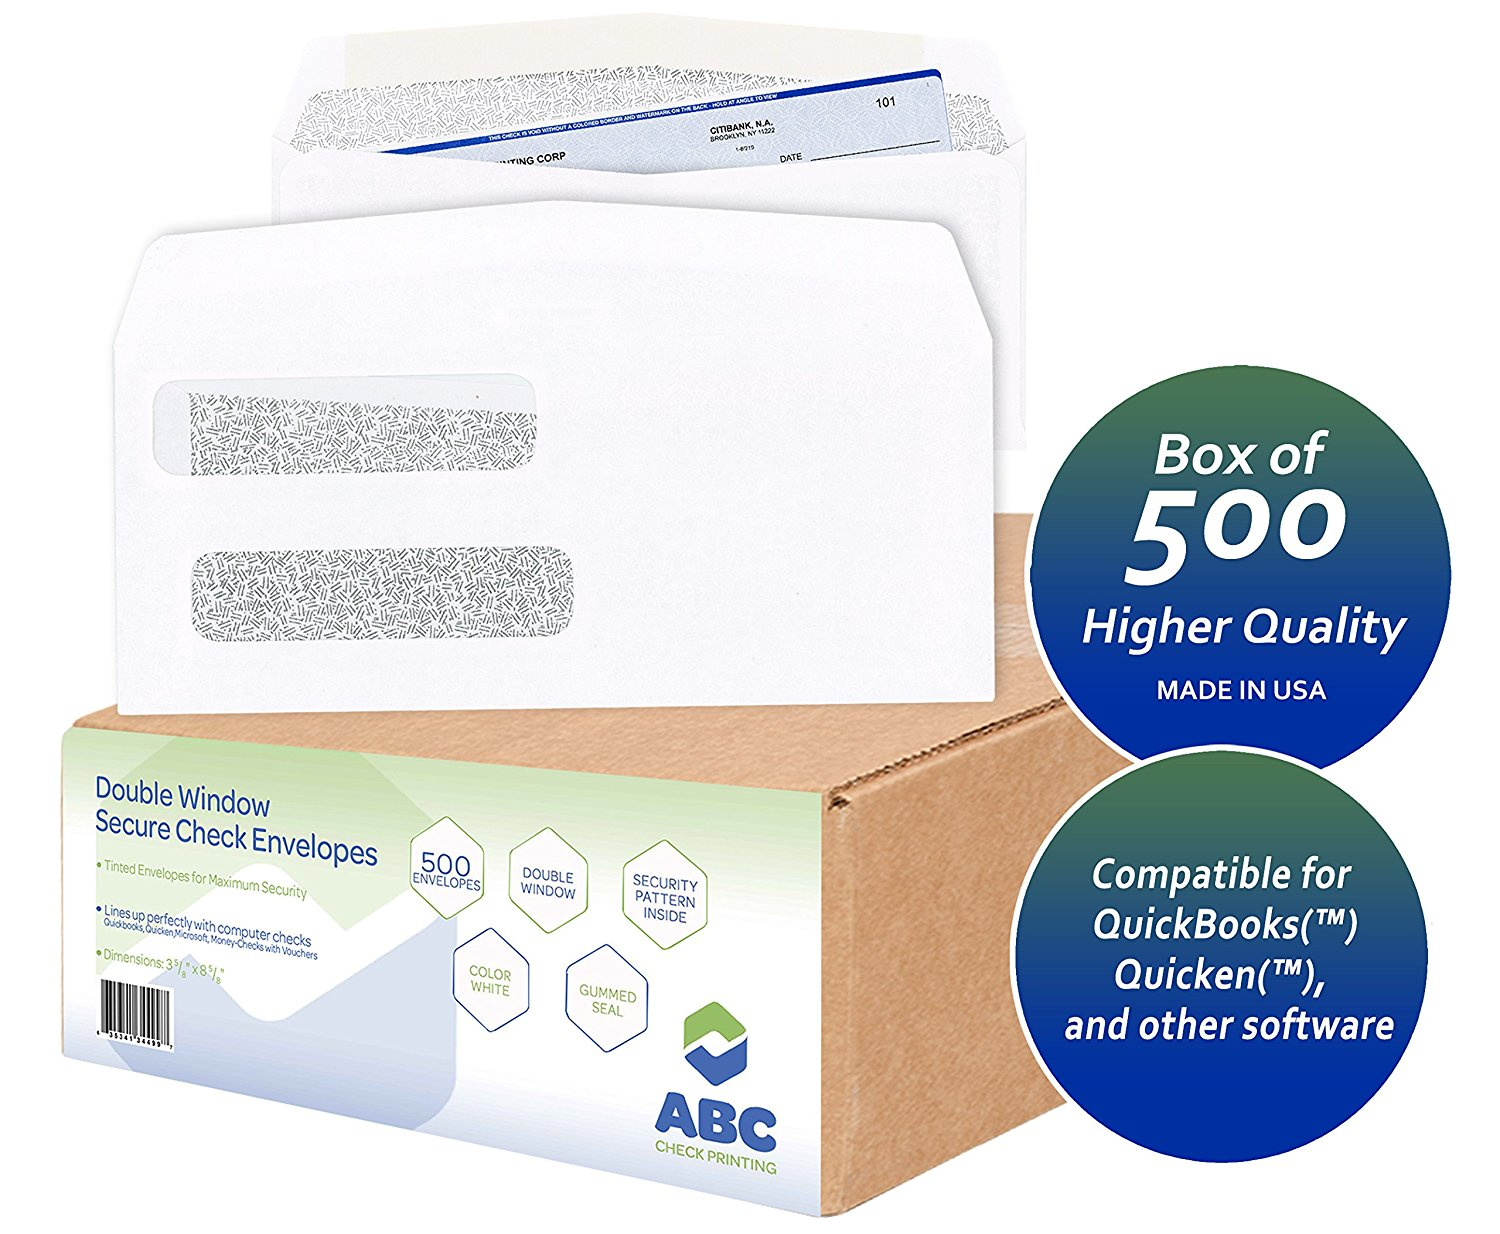 500 Check Envelope, Double Window Security Confidential Tinted Envelopes for QuickBooks Checks, Business Laser Checks, 24 lb, 3-5/8 x 8-5/8-Inches, Box of 500 Envelopes (Designed by ABC)